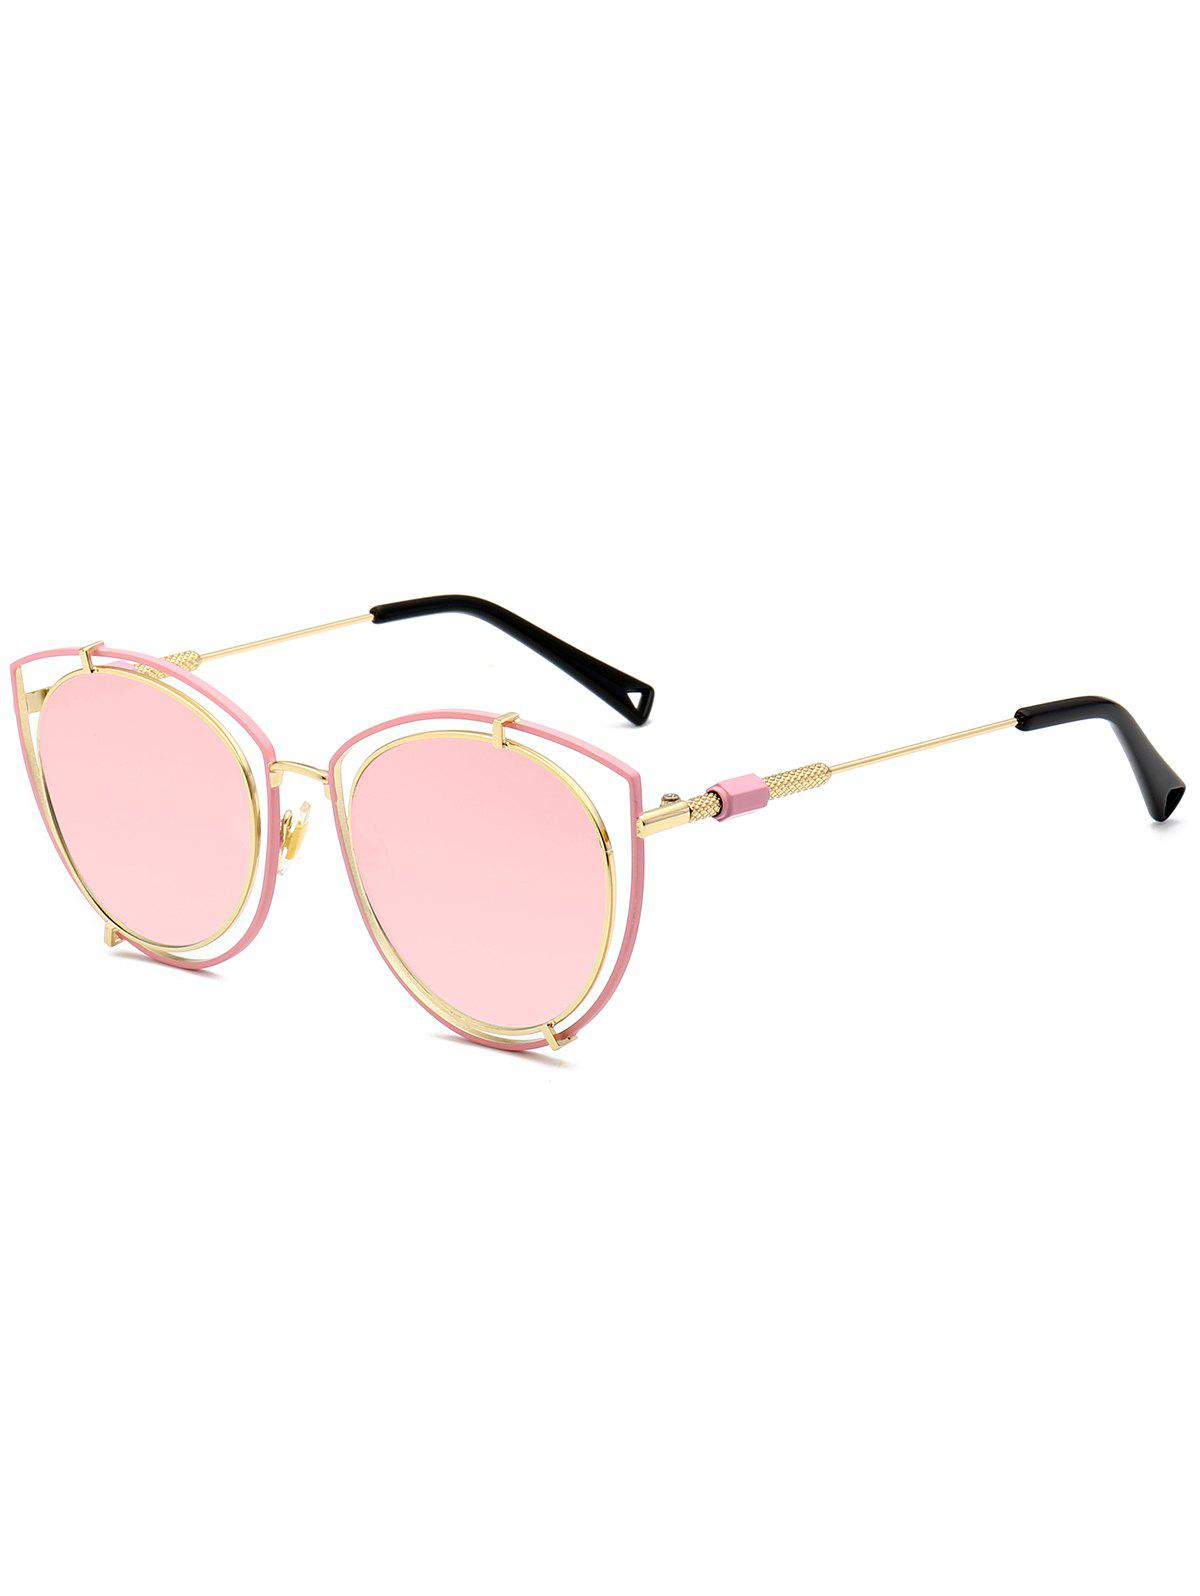 32b515e33f Outfit Double Frame Hollow Out Cat Eye Sunglasses